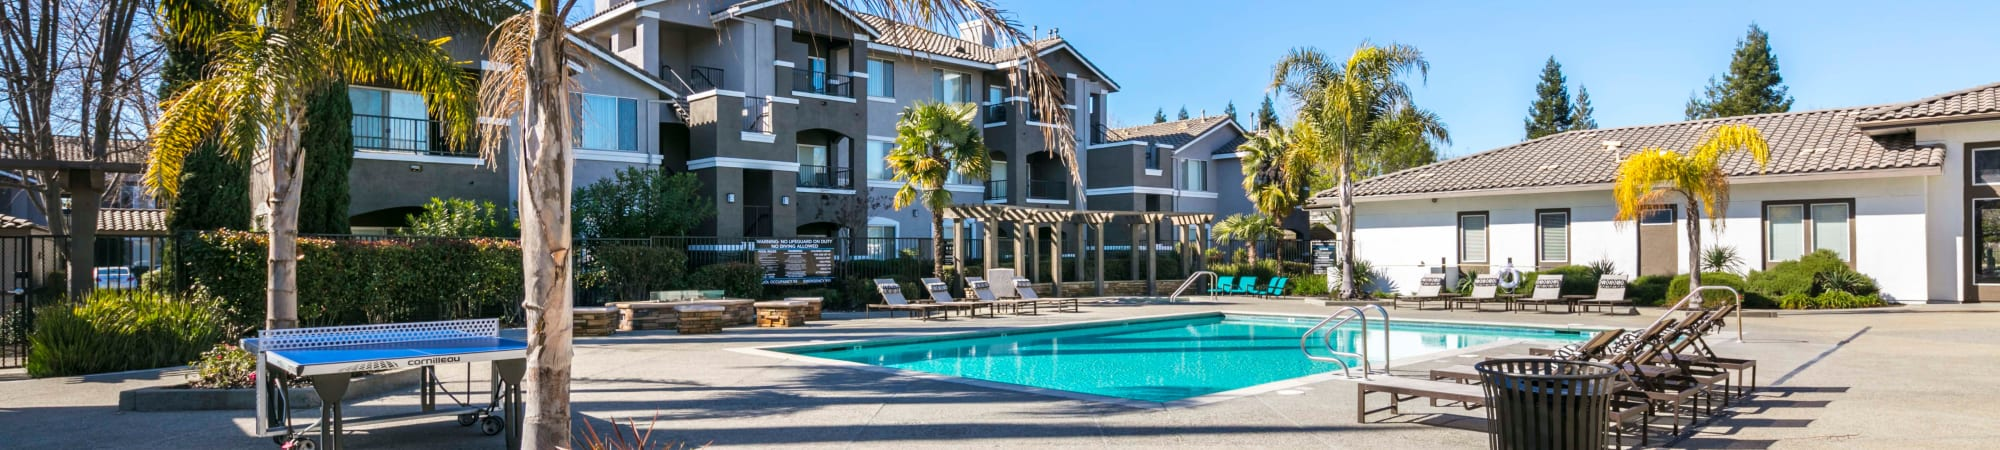 Floor plans with a refreshing outdoor pool at Miramonte and Trovas in Sacramento, California